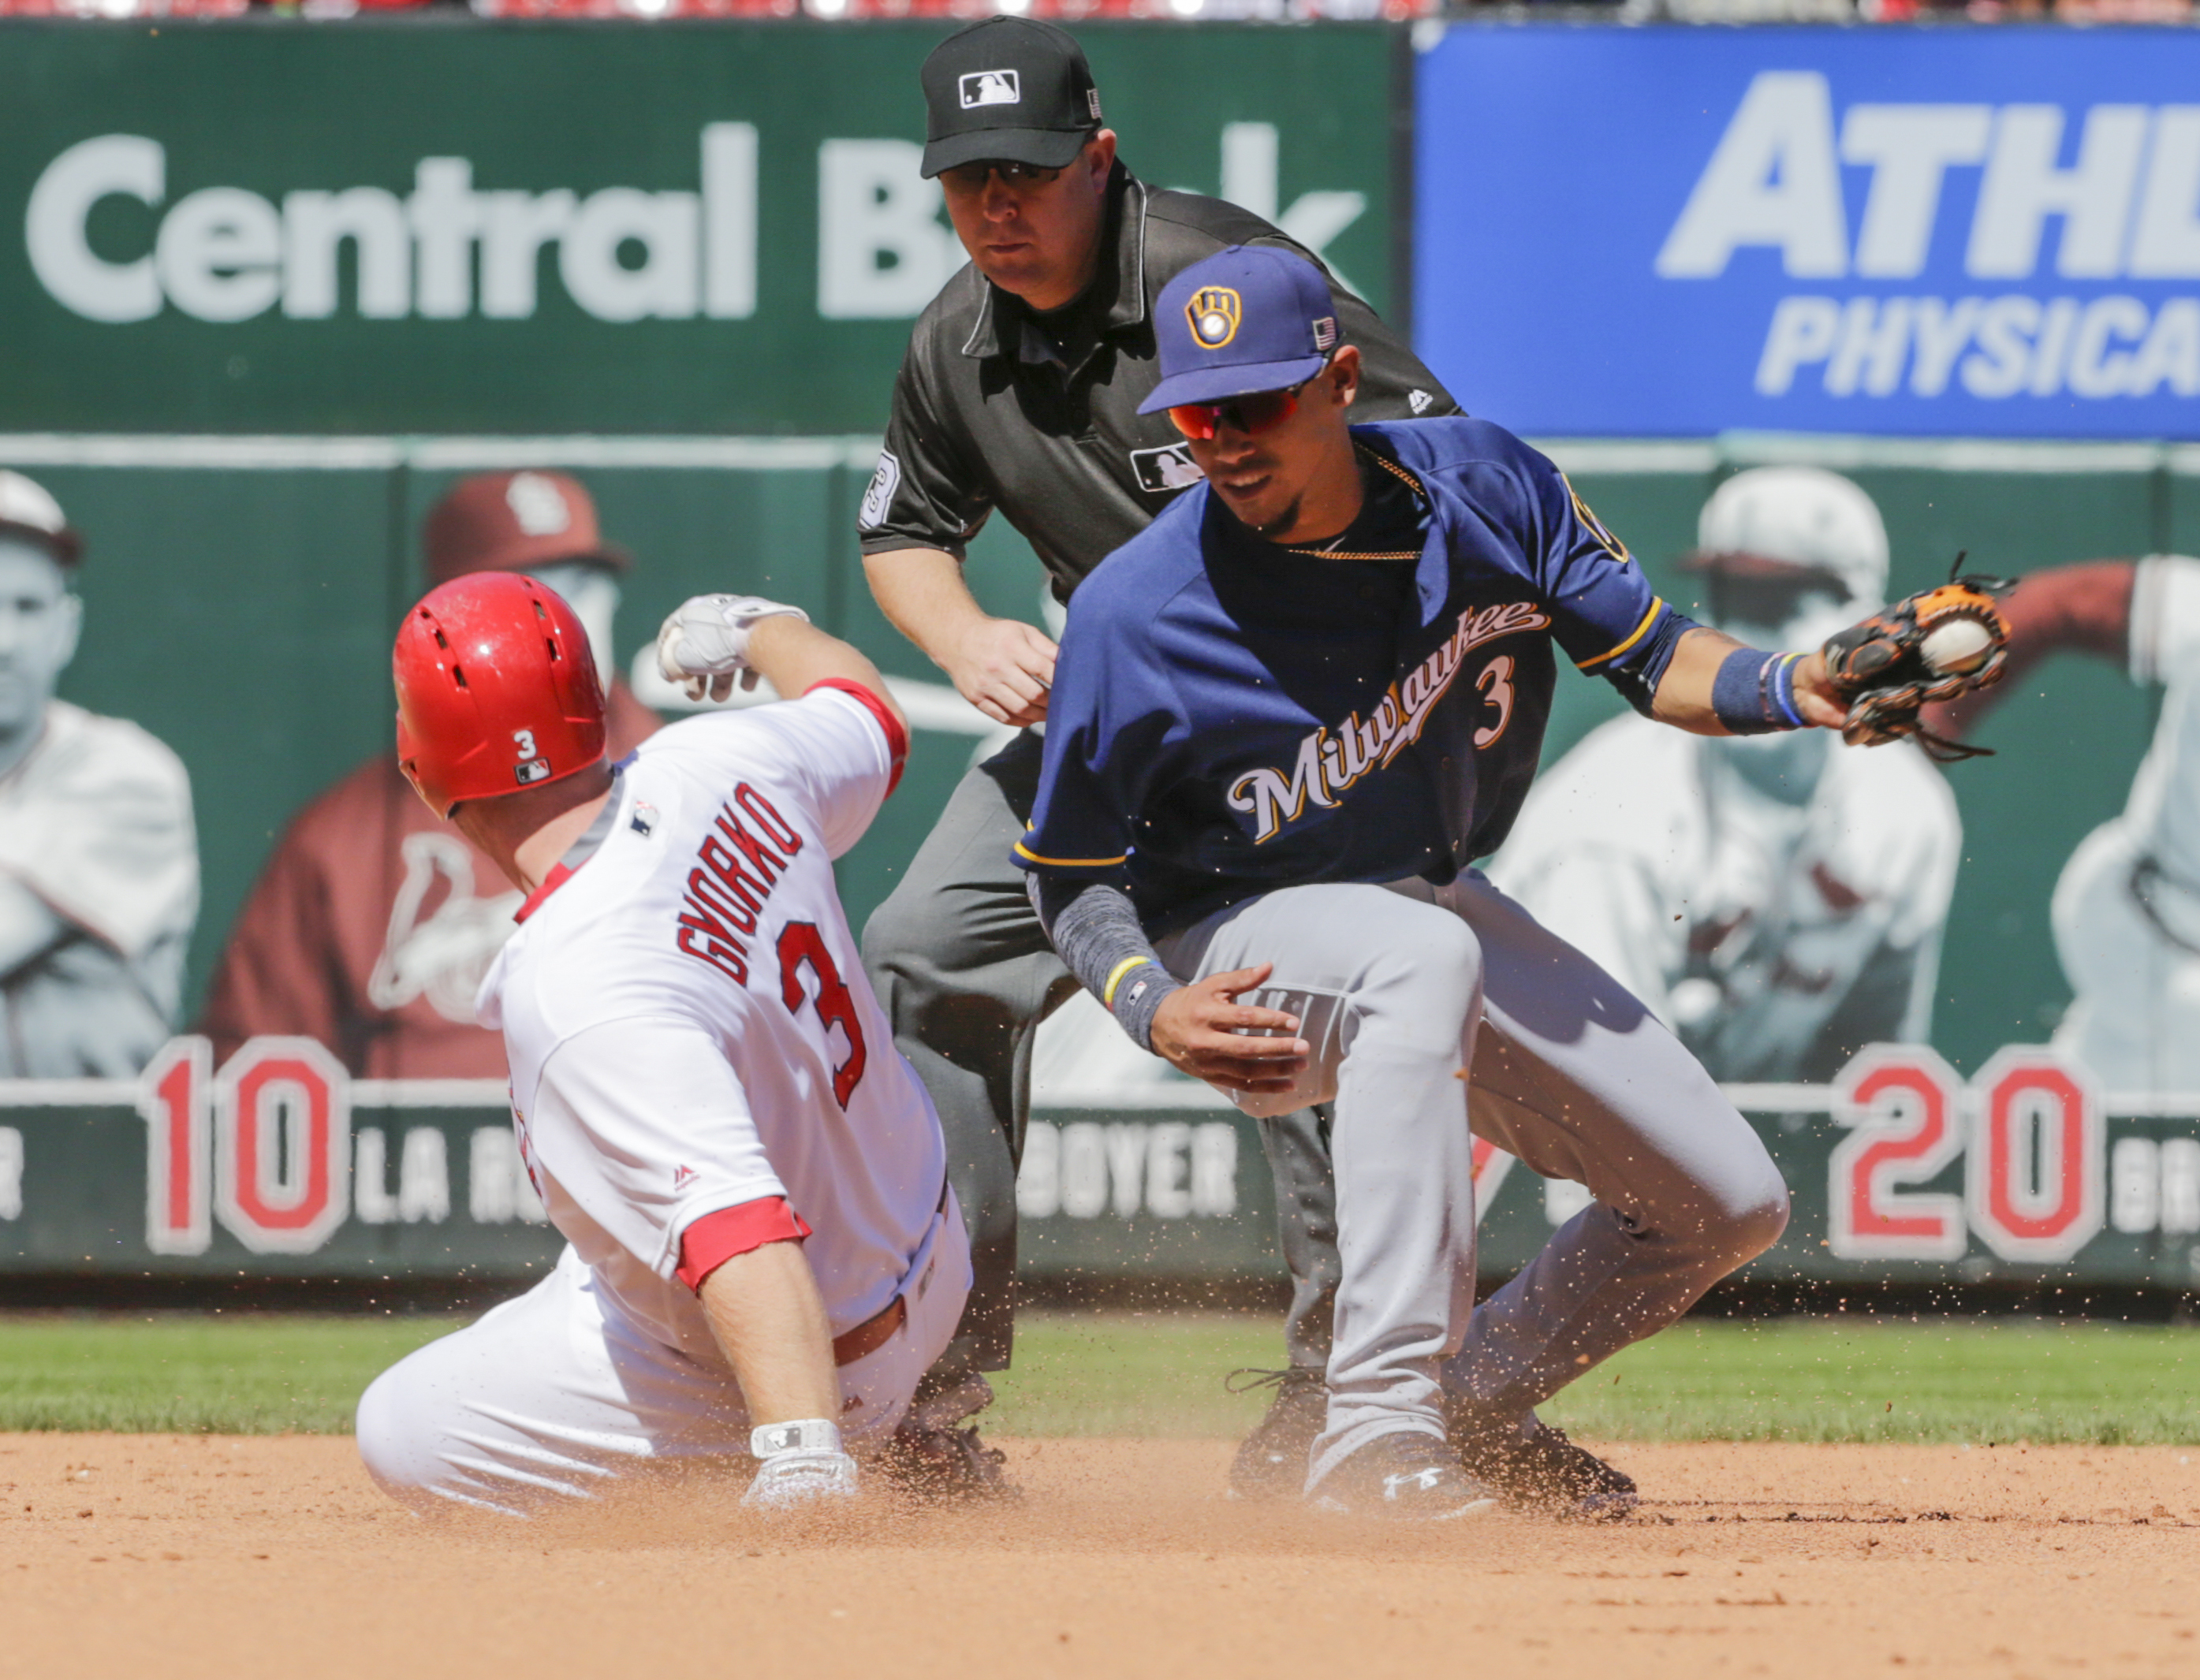 St. Louis Cardinals' Jed Gyorko (3) slides in safe to second as Milwaukee Brewers shortstop Orlando Arcia (3) spins to make the late tag in the fifth inning of a baseball game, Sunday, Sept. 11, 2016, in St. Louis. (AP Photo/Tom Gannam)